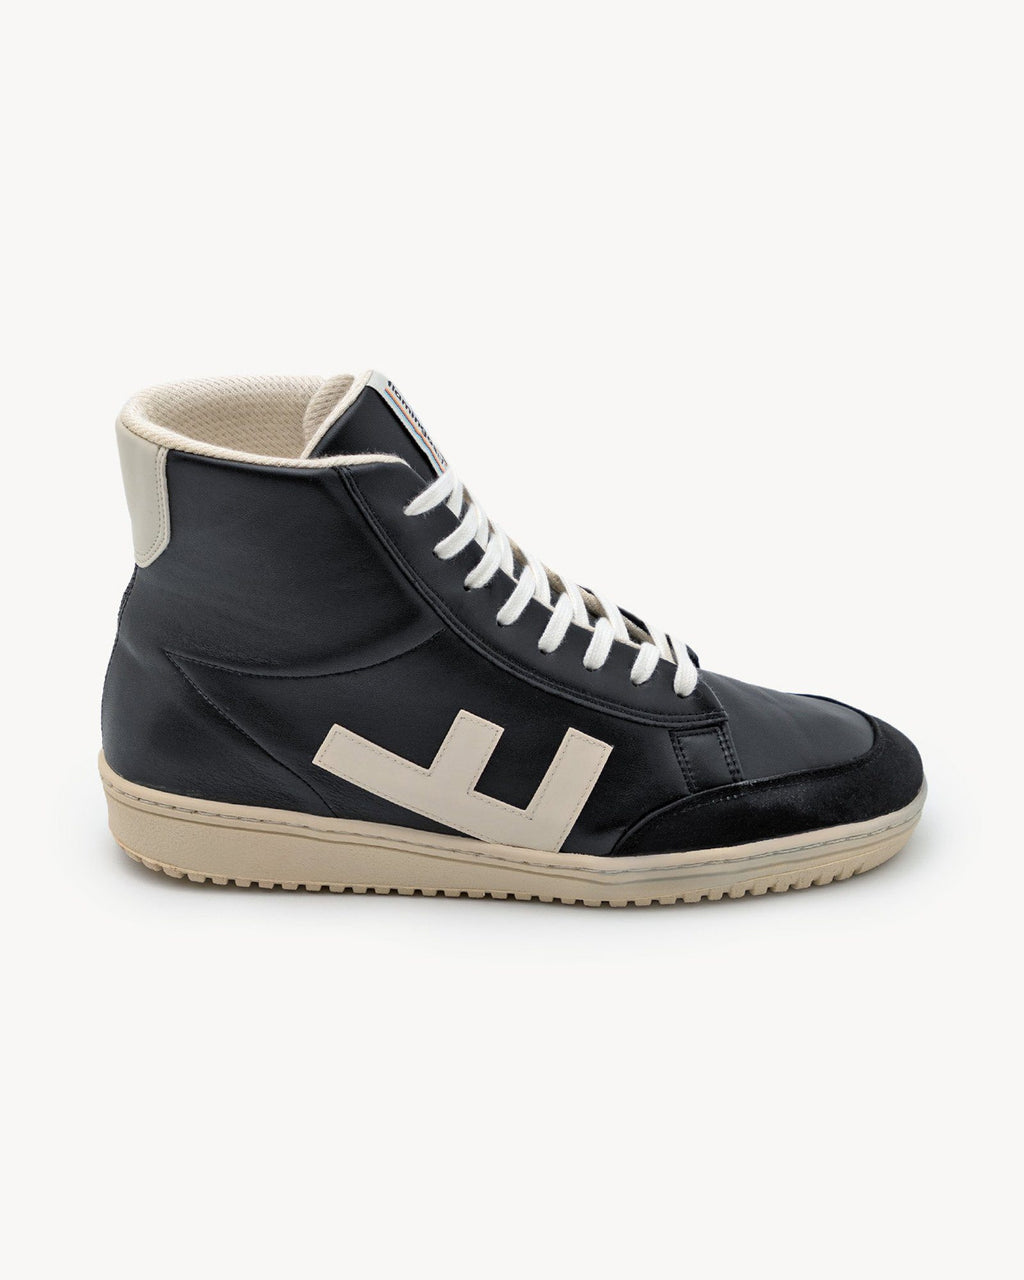 variant_1 | EN High Sneakers Black Shoes Men | DE Schwarze High Sneakers Boots Herren Turnschuhe